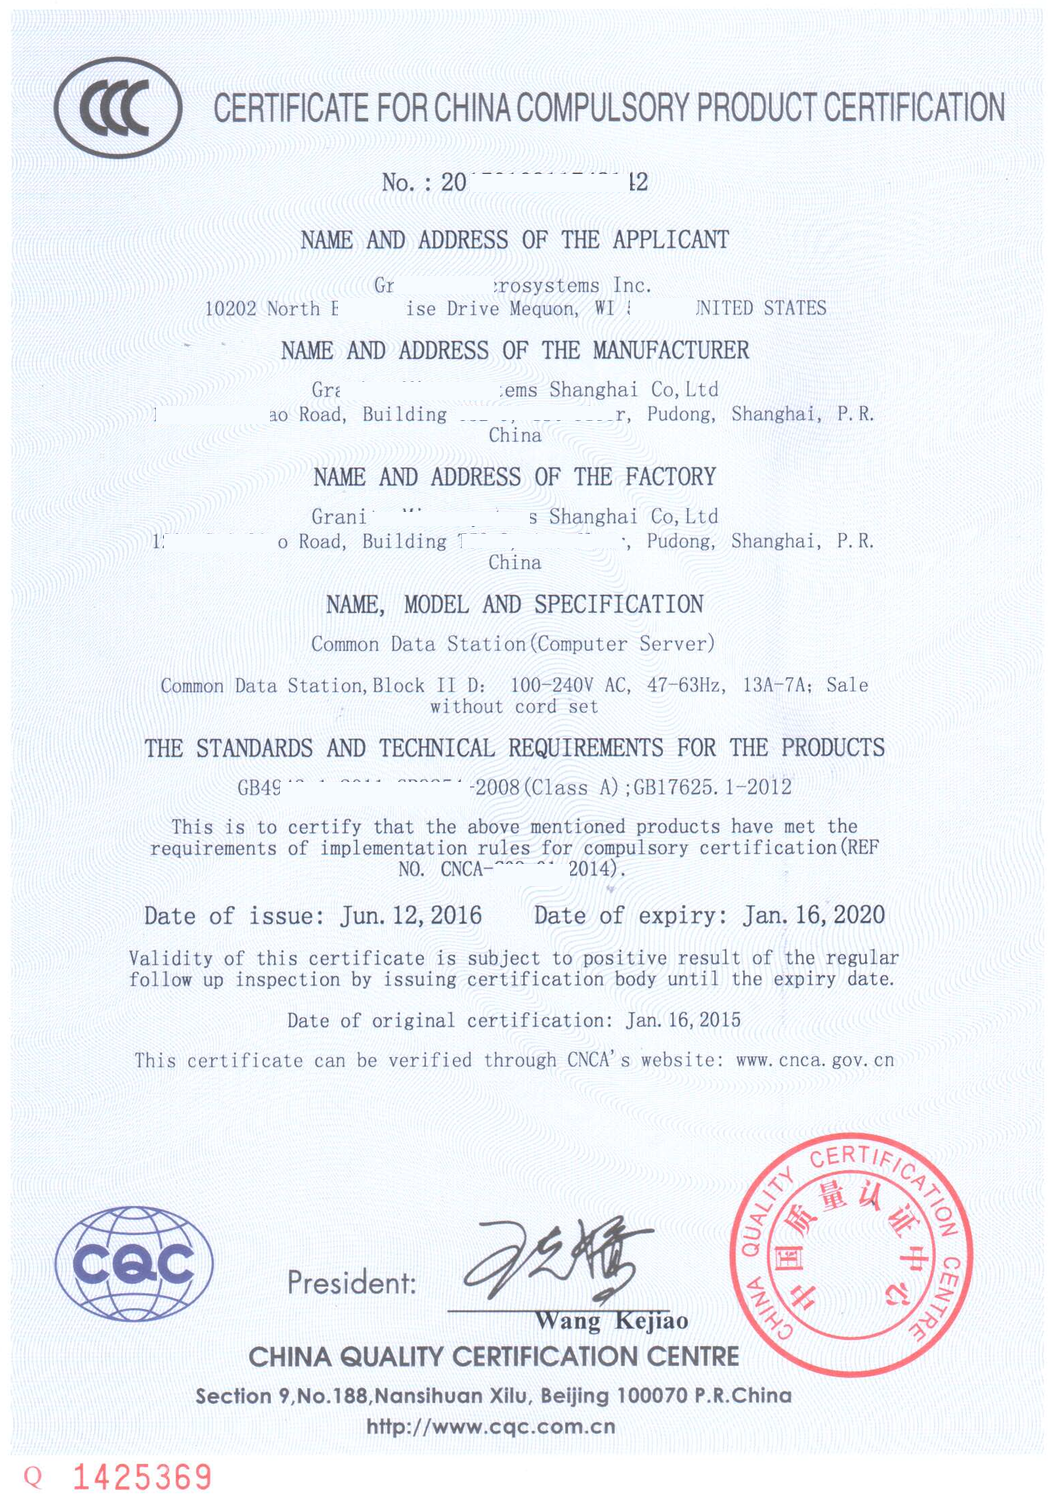 Example of an official CCC